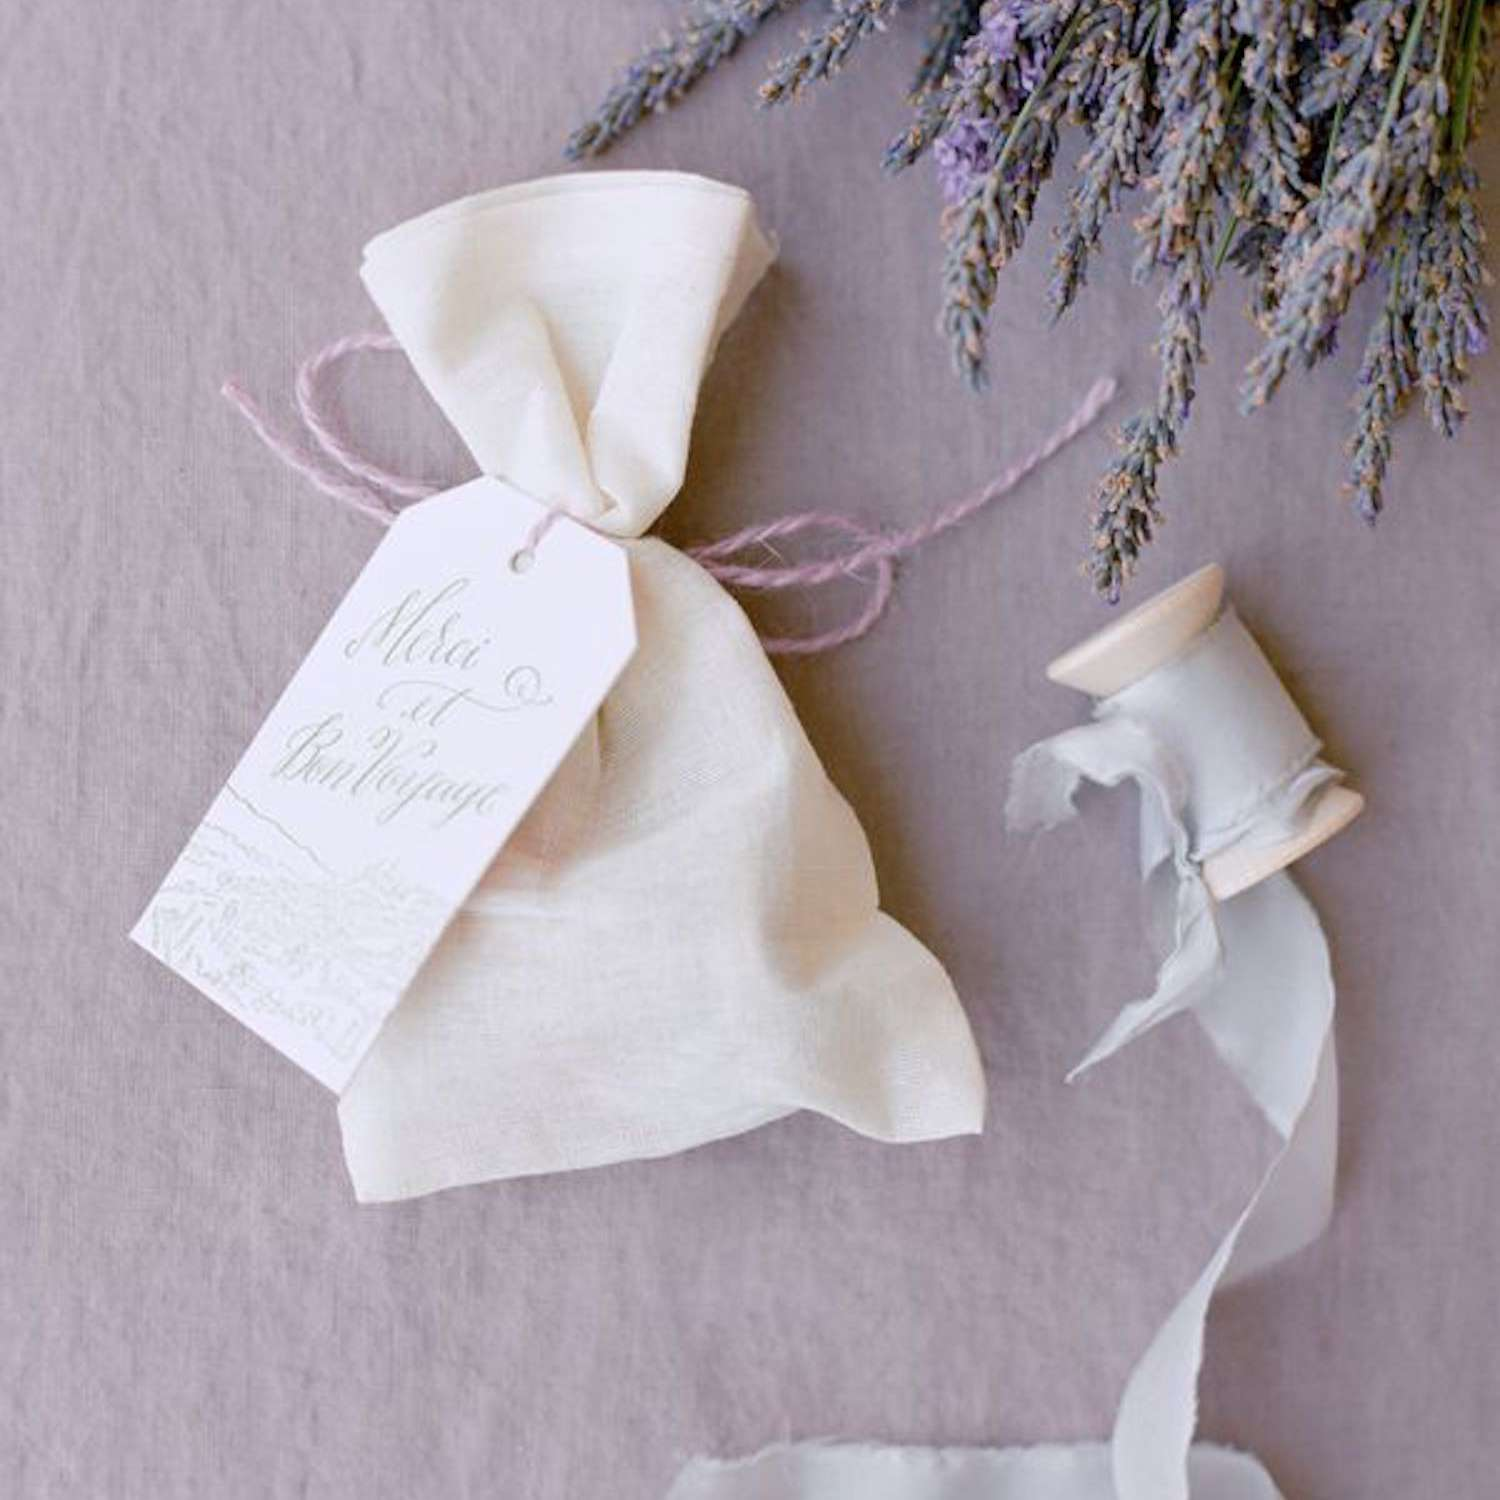 lavender packets